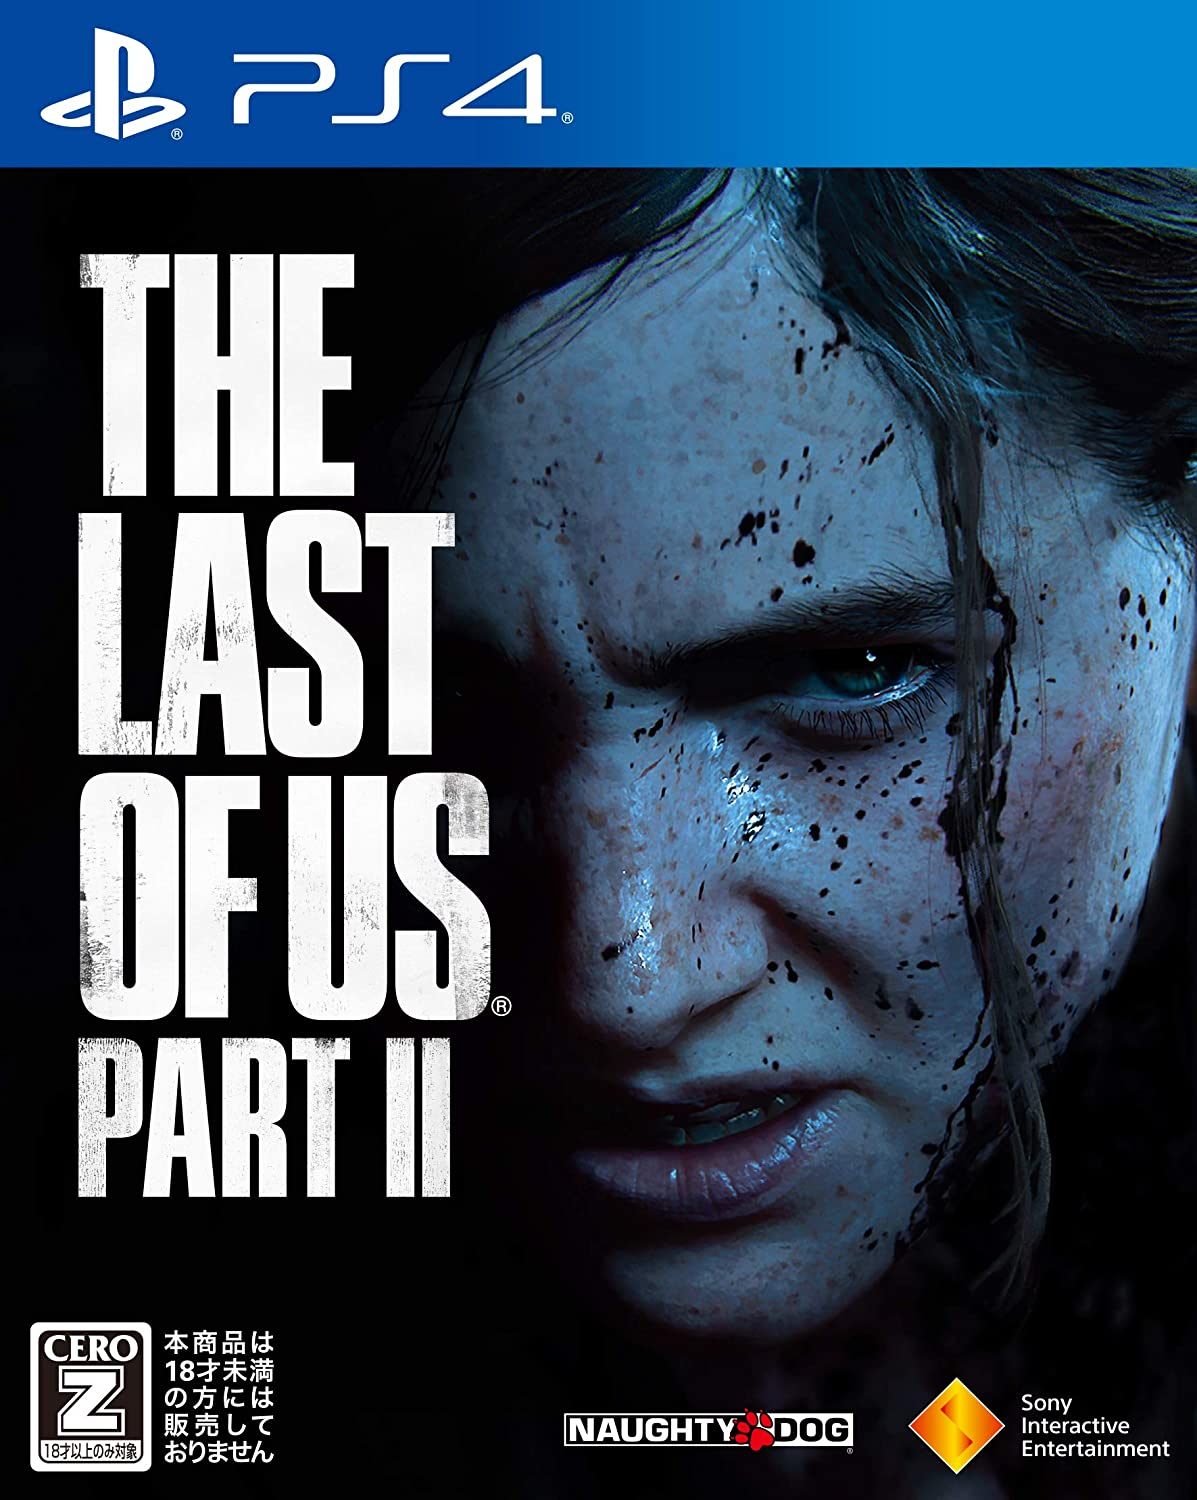 The Last of Us Part II? (通) 高価買取中